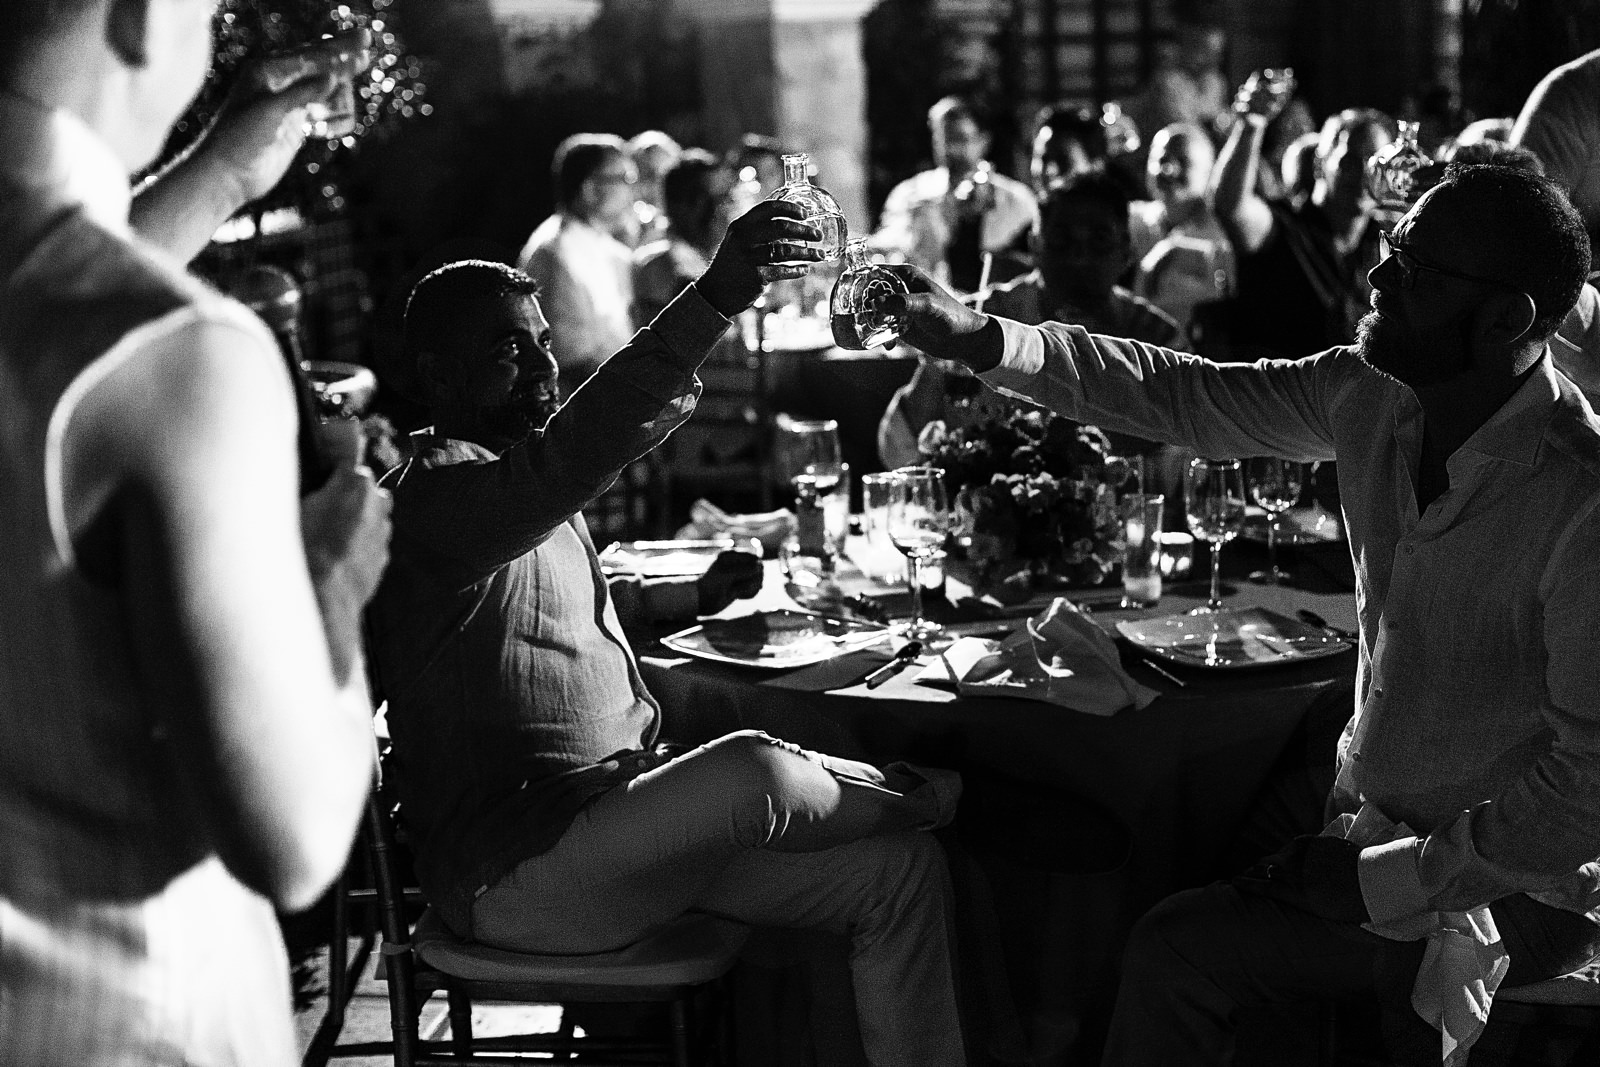 Groom and groom raise their bottle of tequila toasting on the best man speech